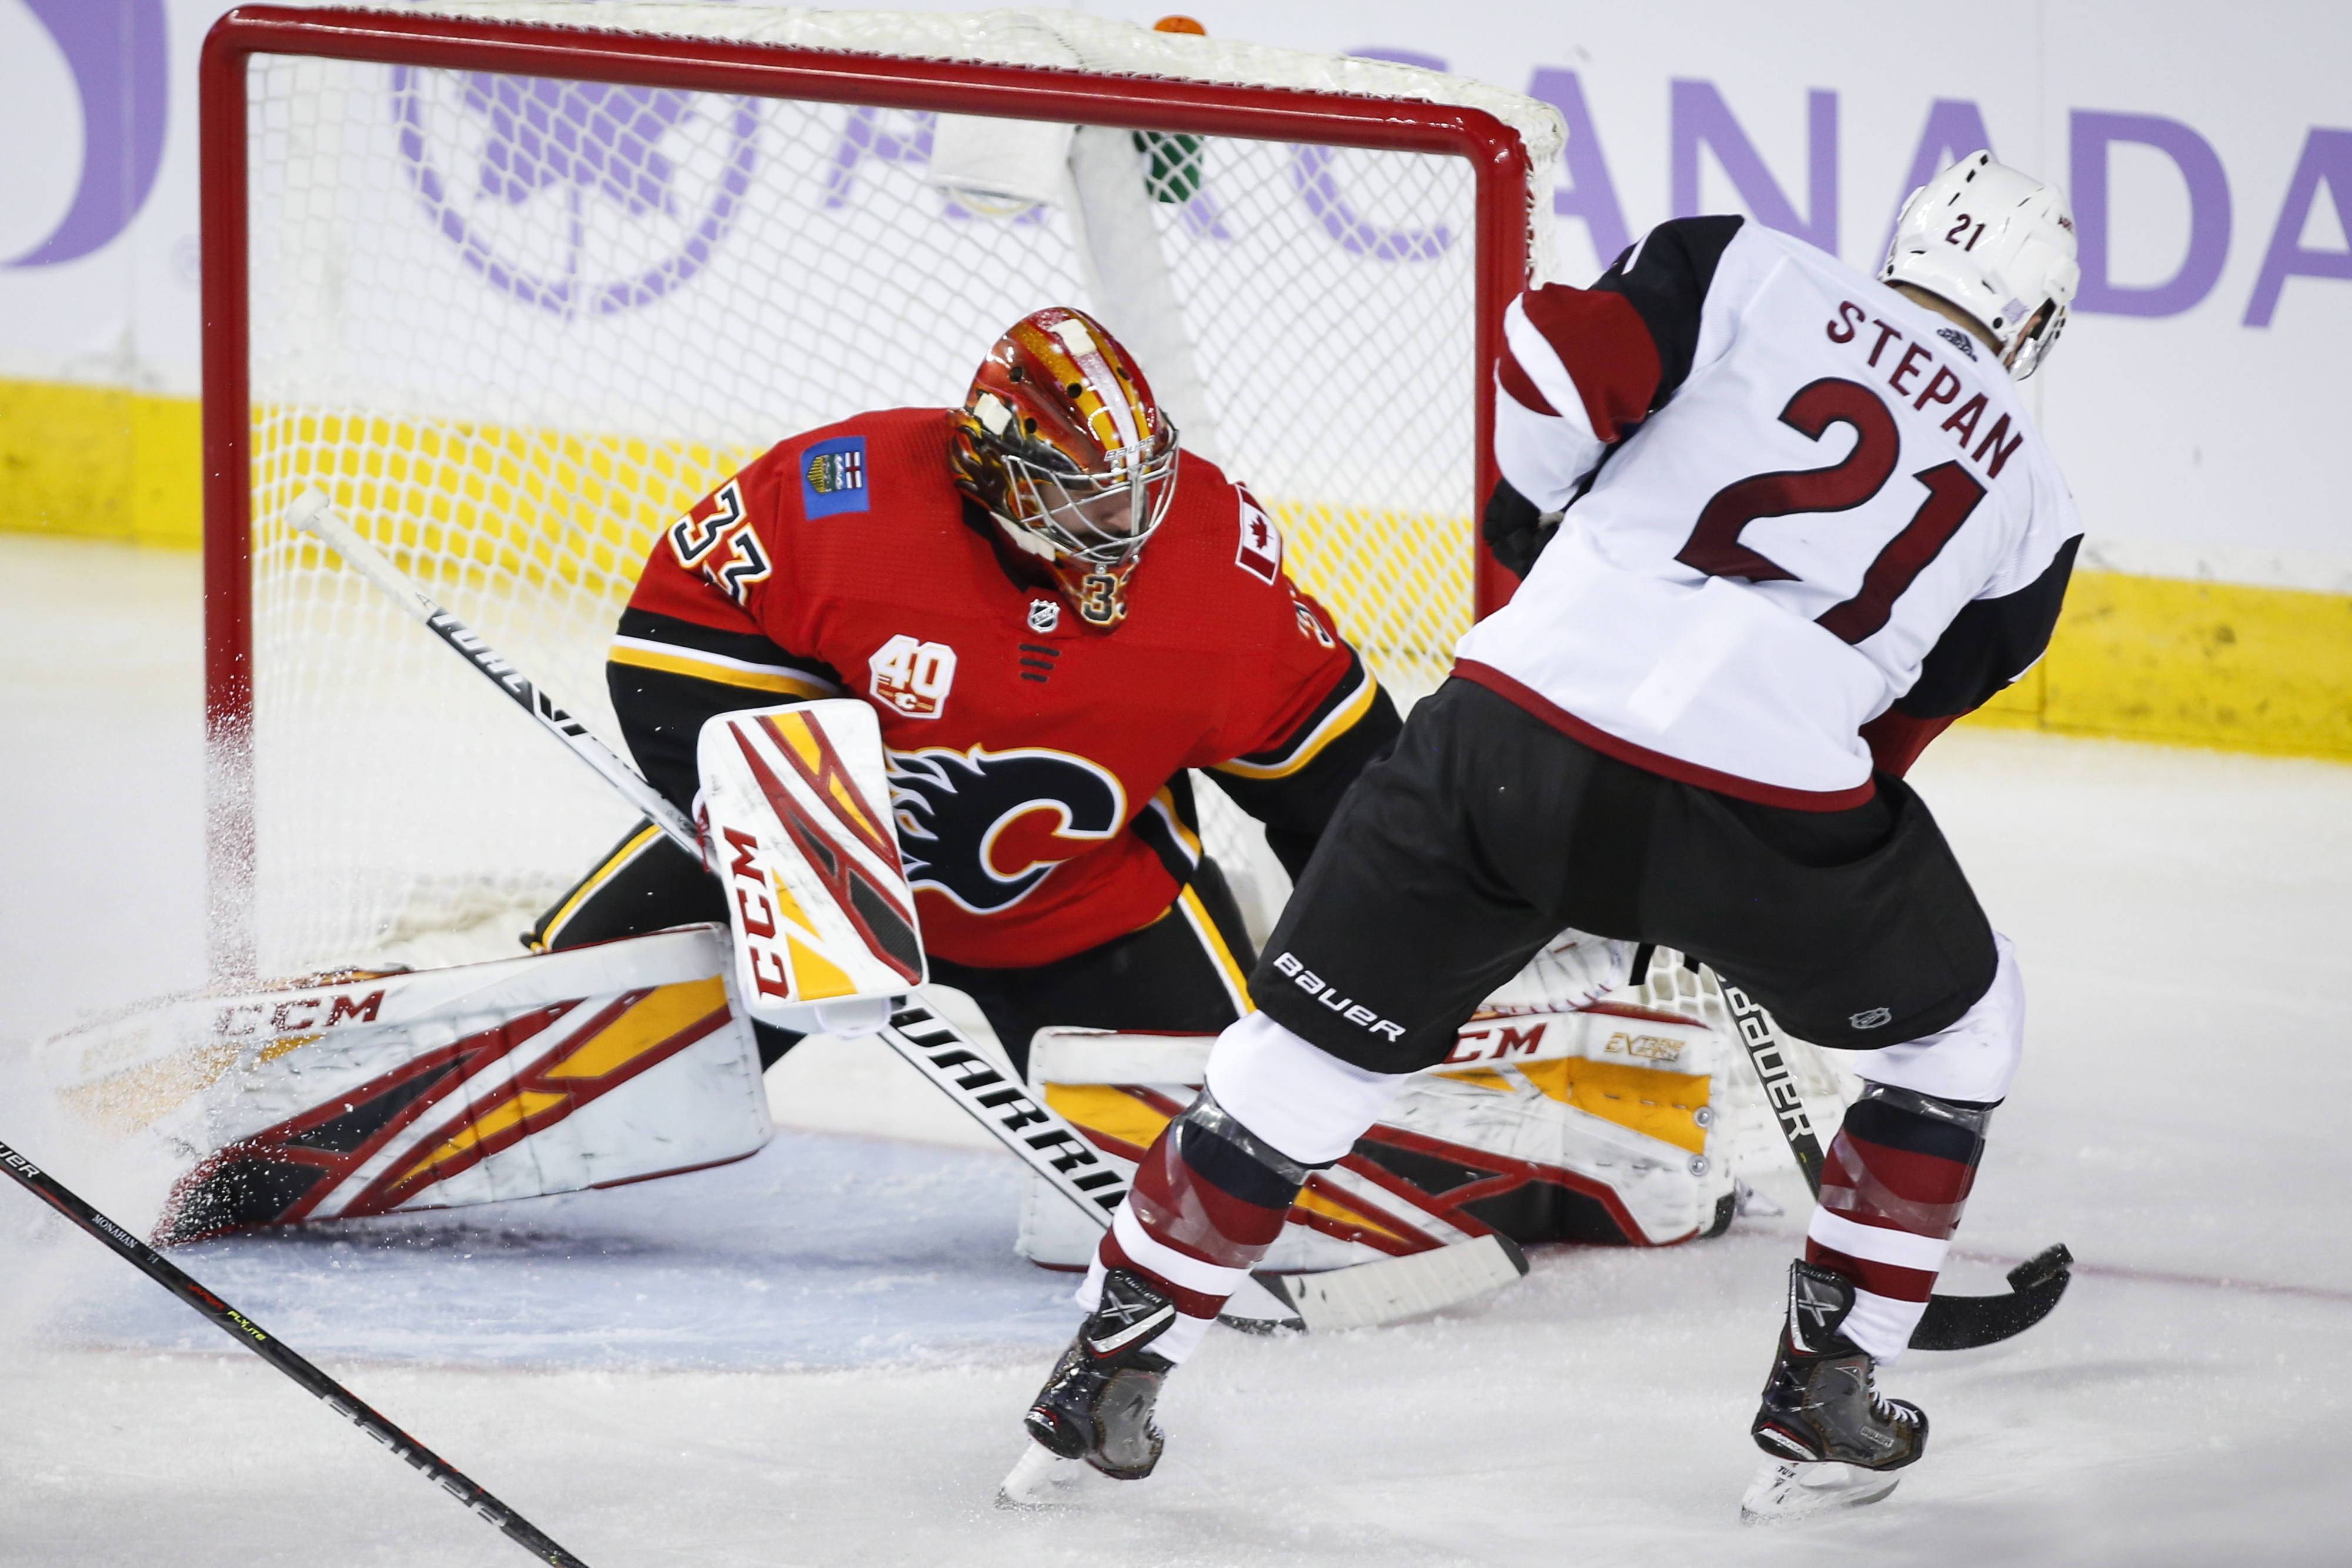 Tkachuk scores in OT to give Flames 4-3 win over Coyotes